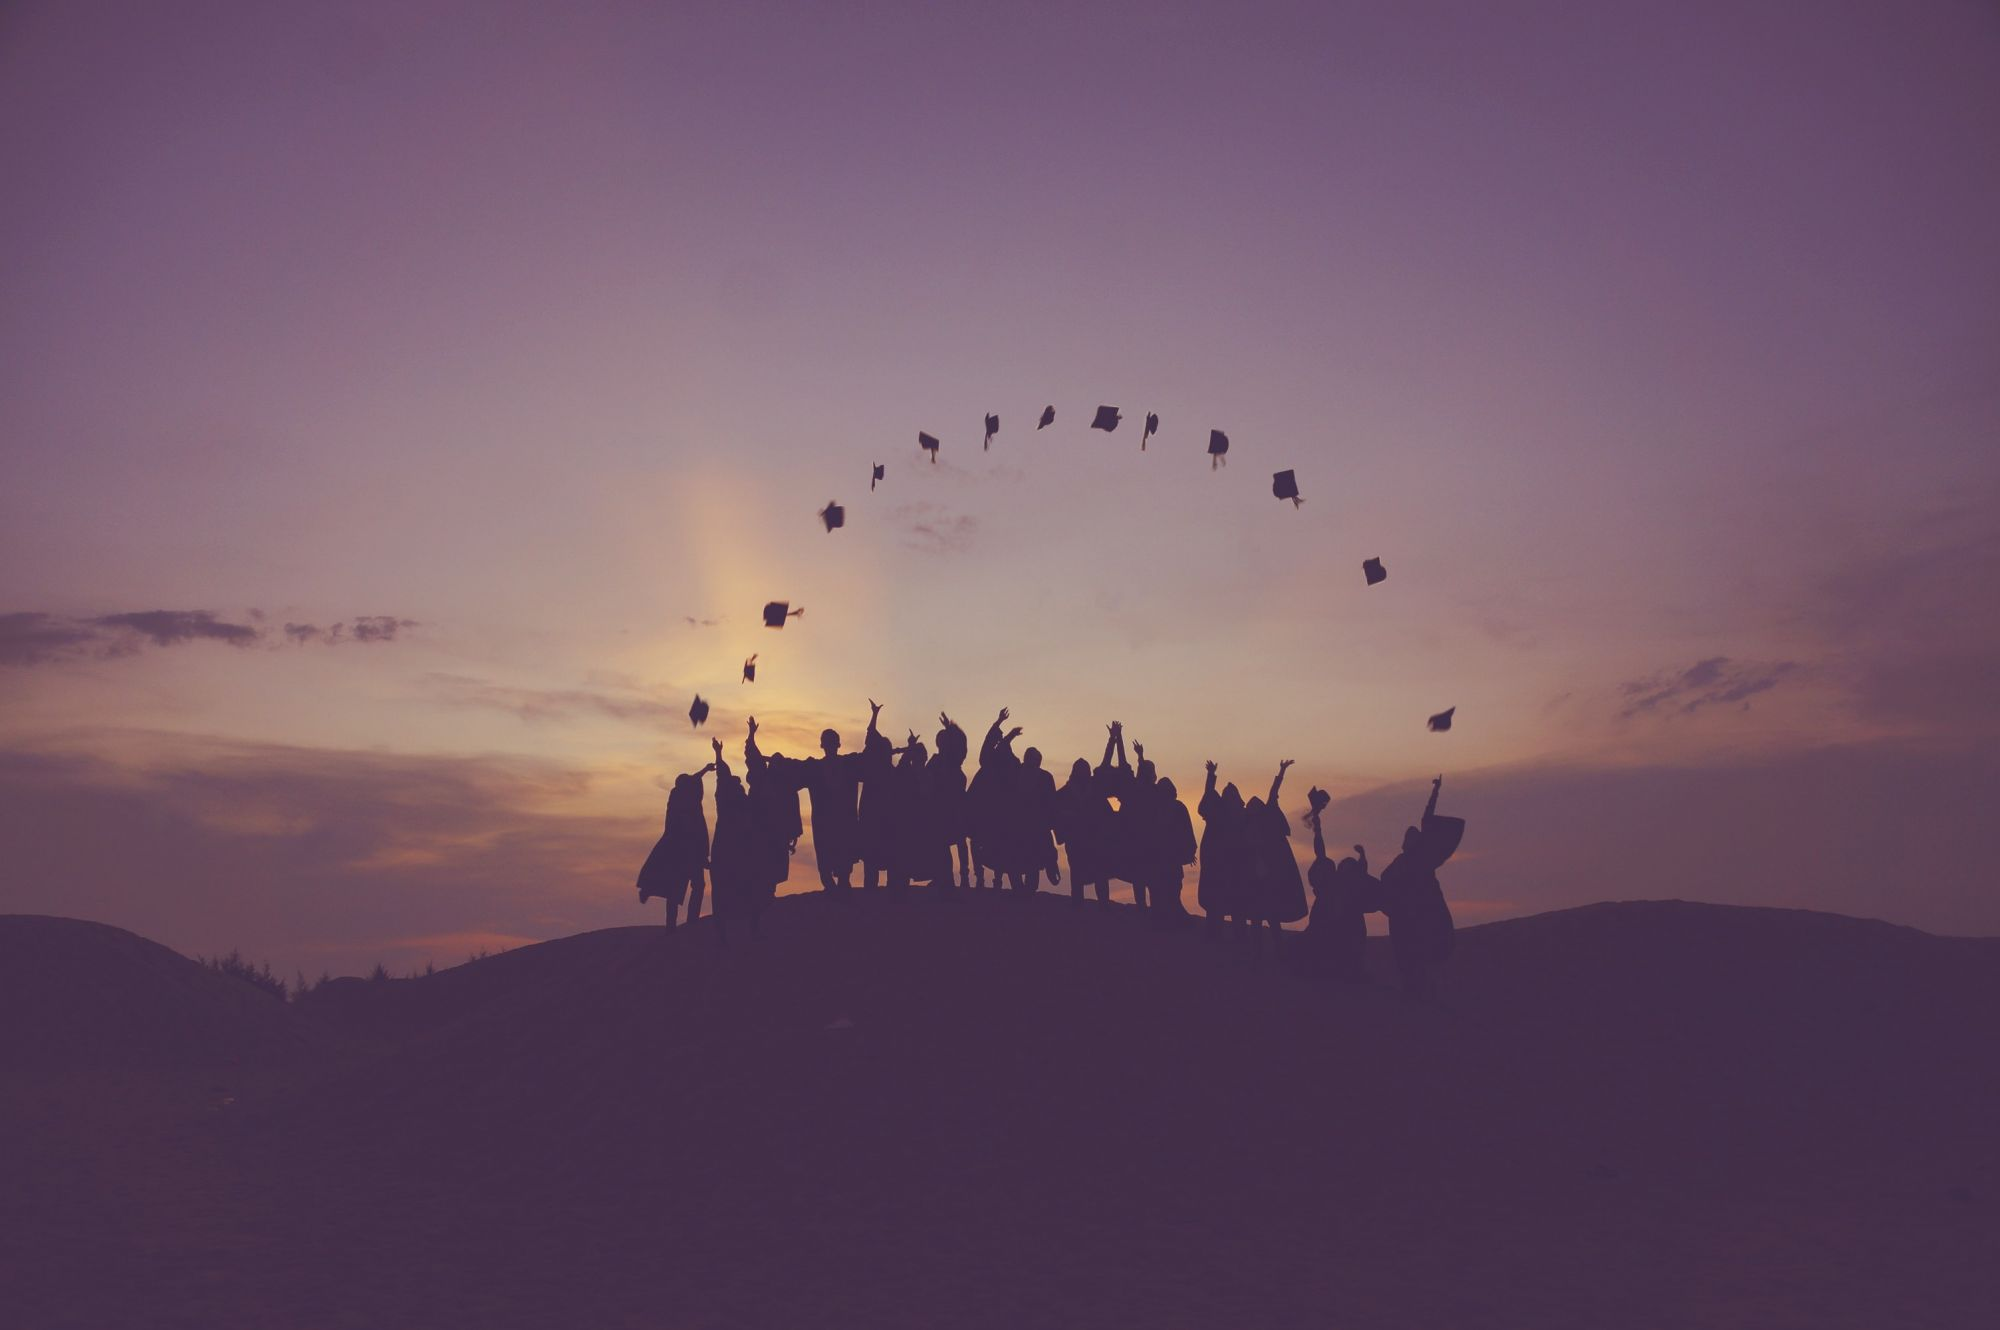 Class Of 2020 Graduates Reveal Their Hopes and Dreams For the Future